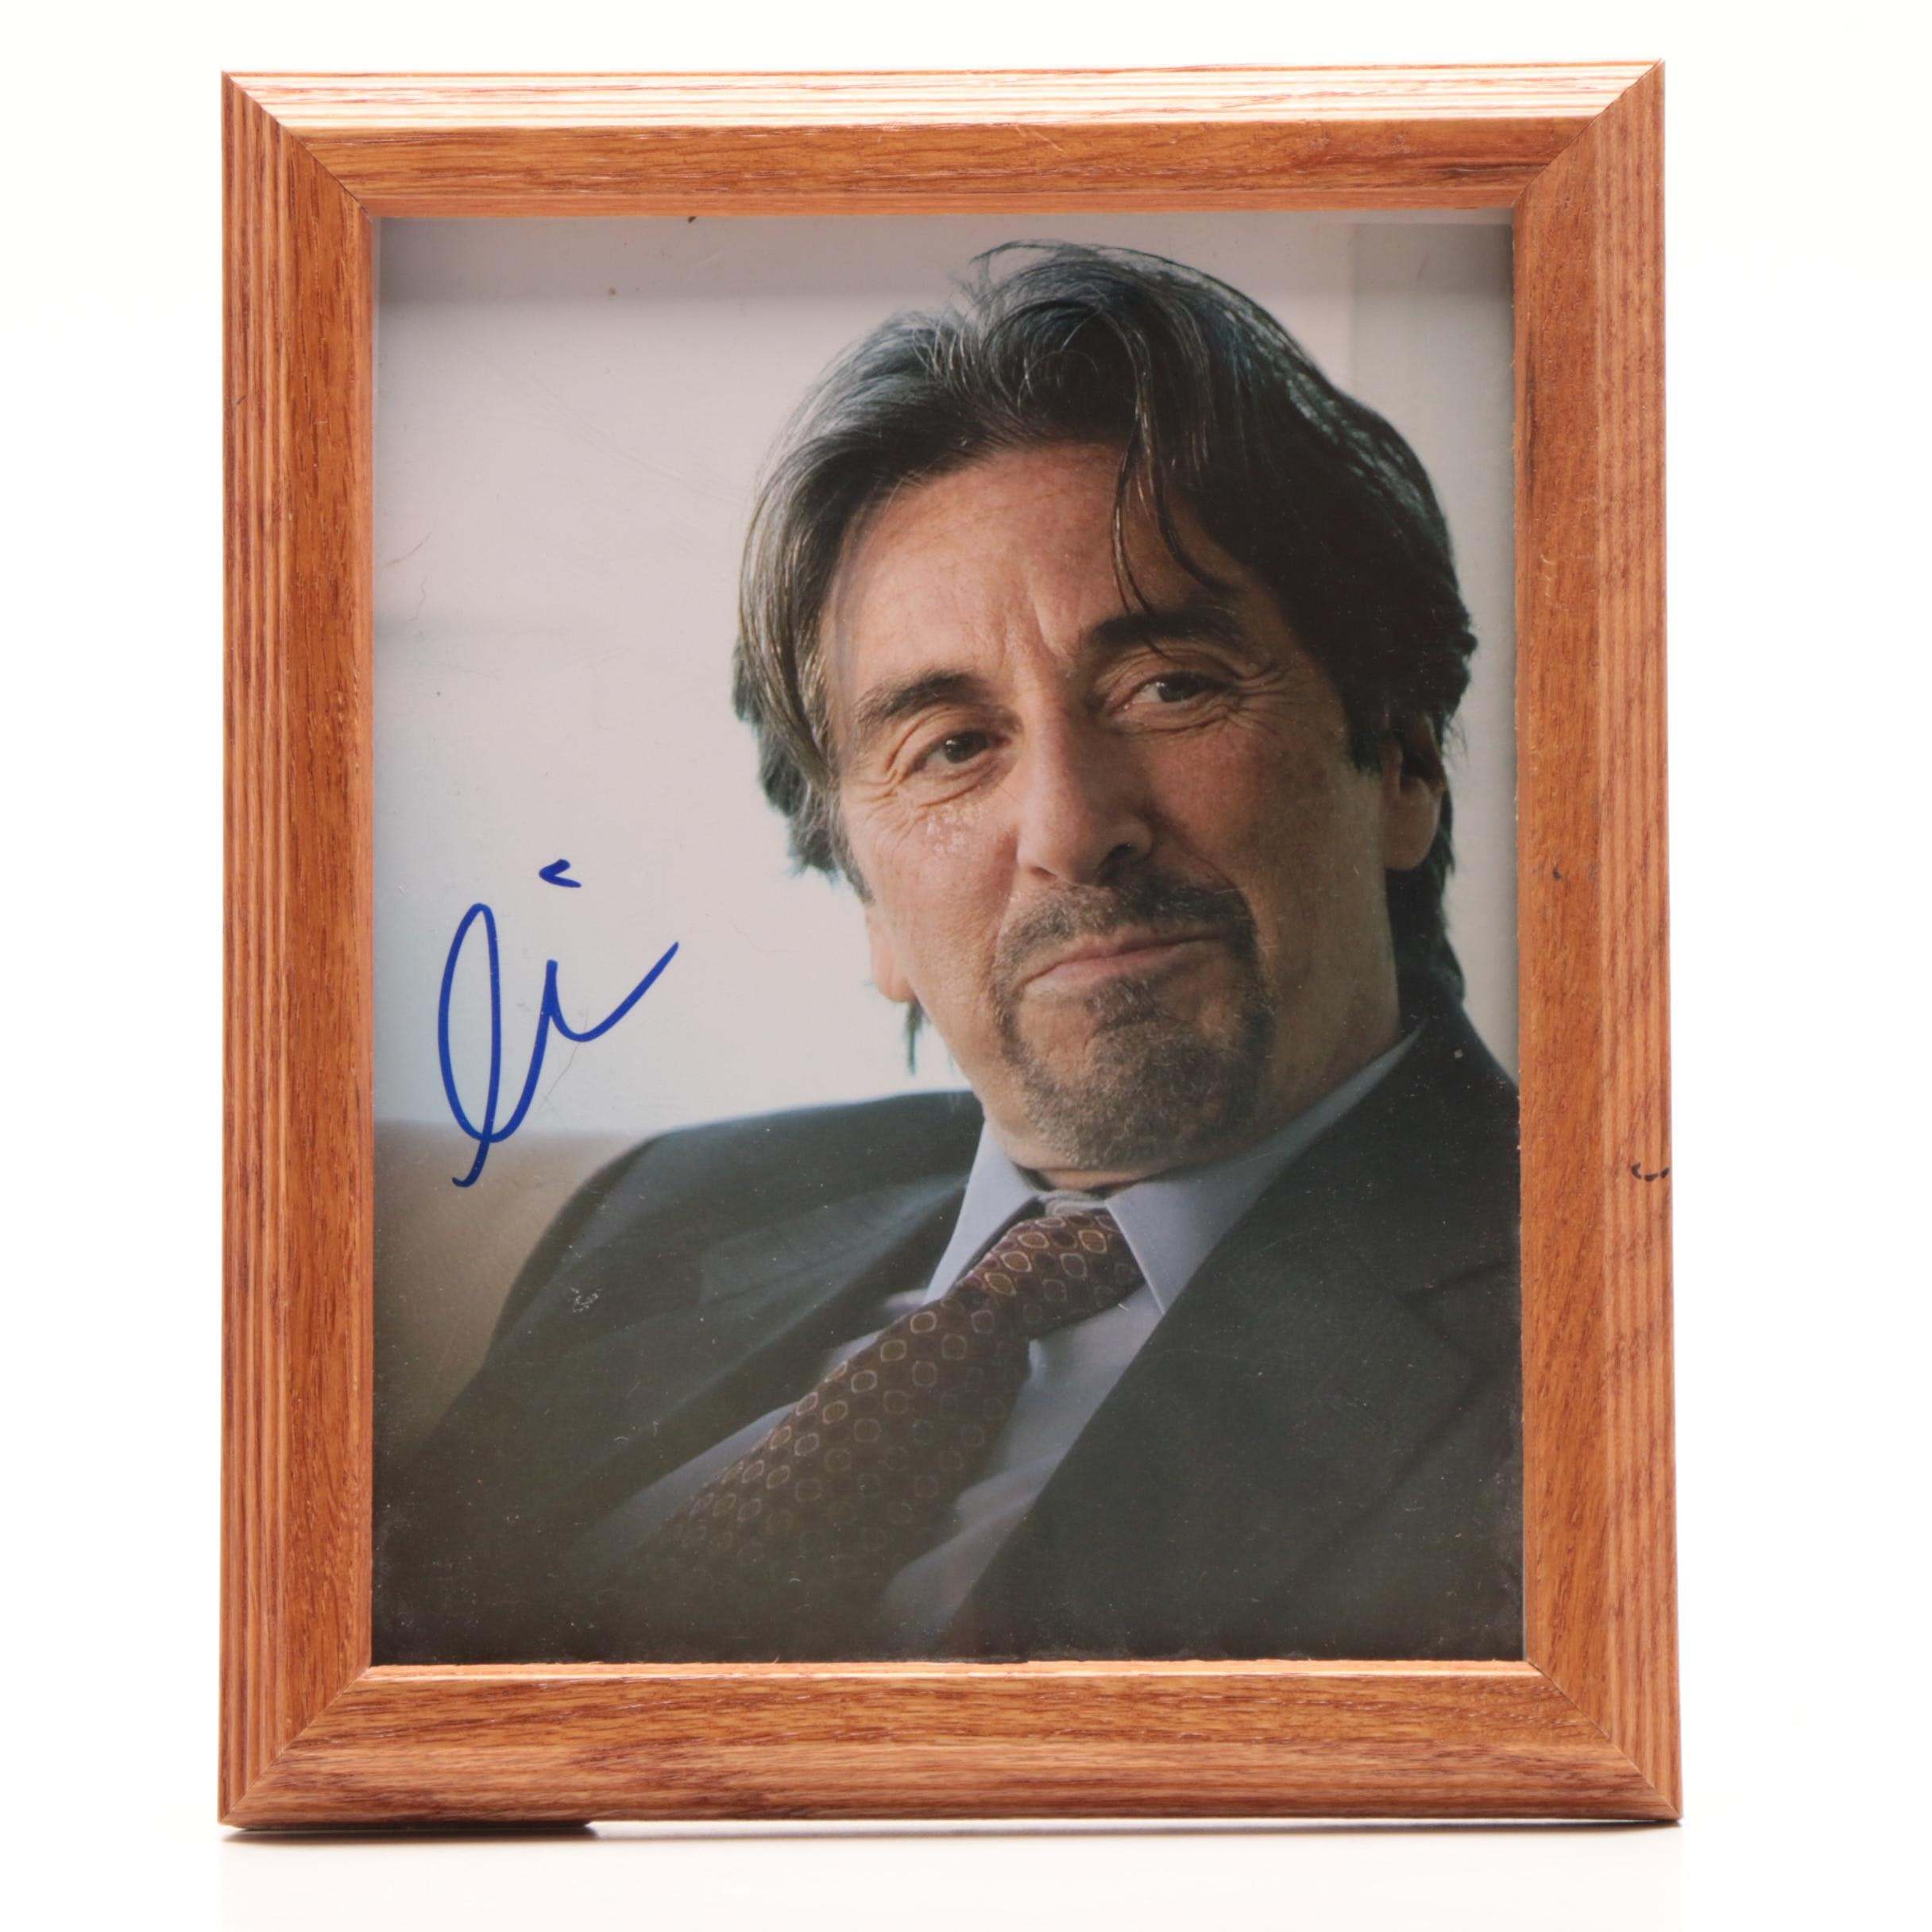 Academy Award Winner Al Pacino Autographed Framed Photo Print